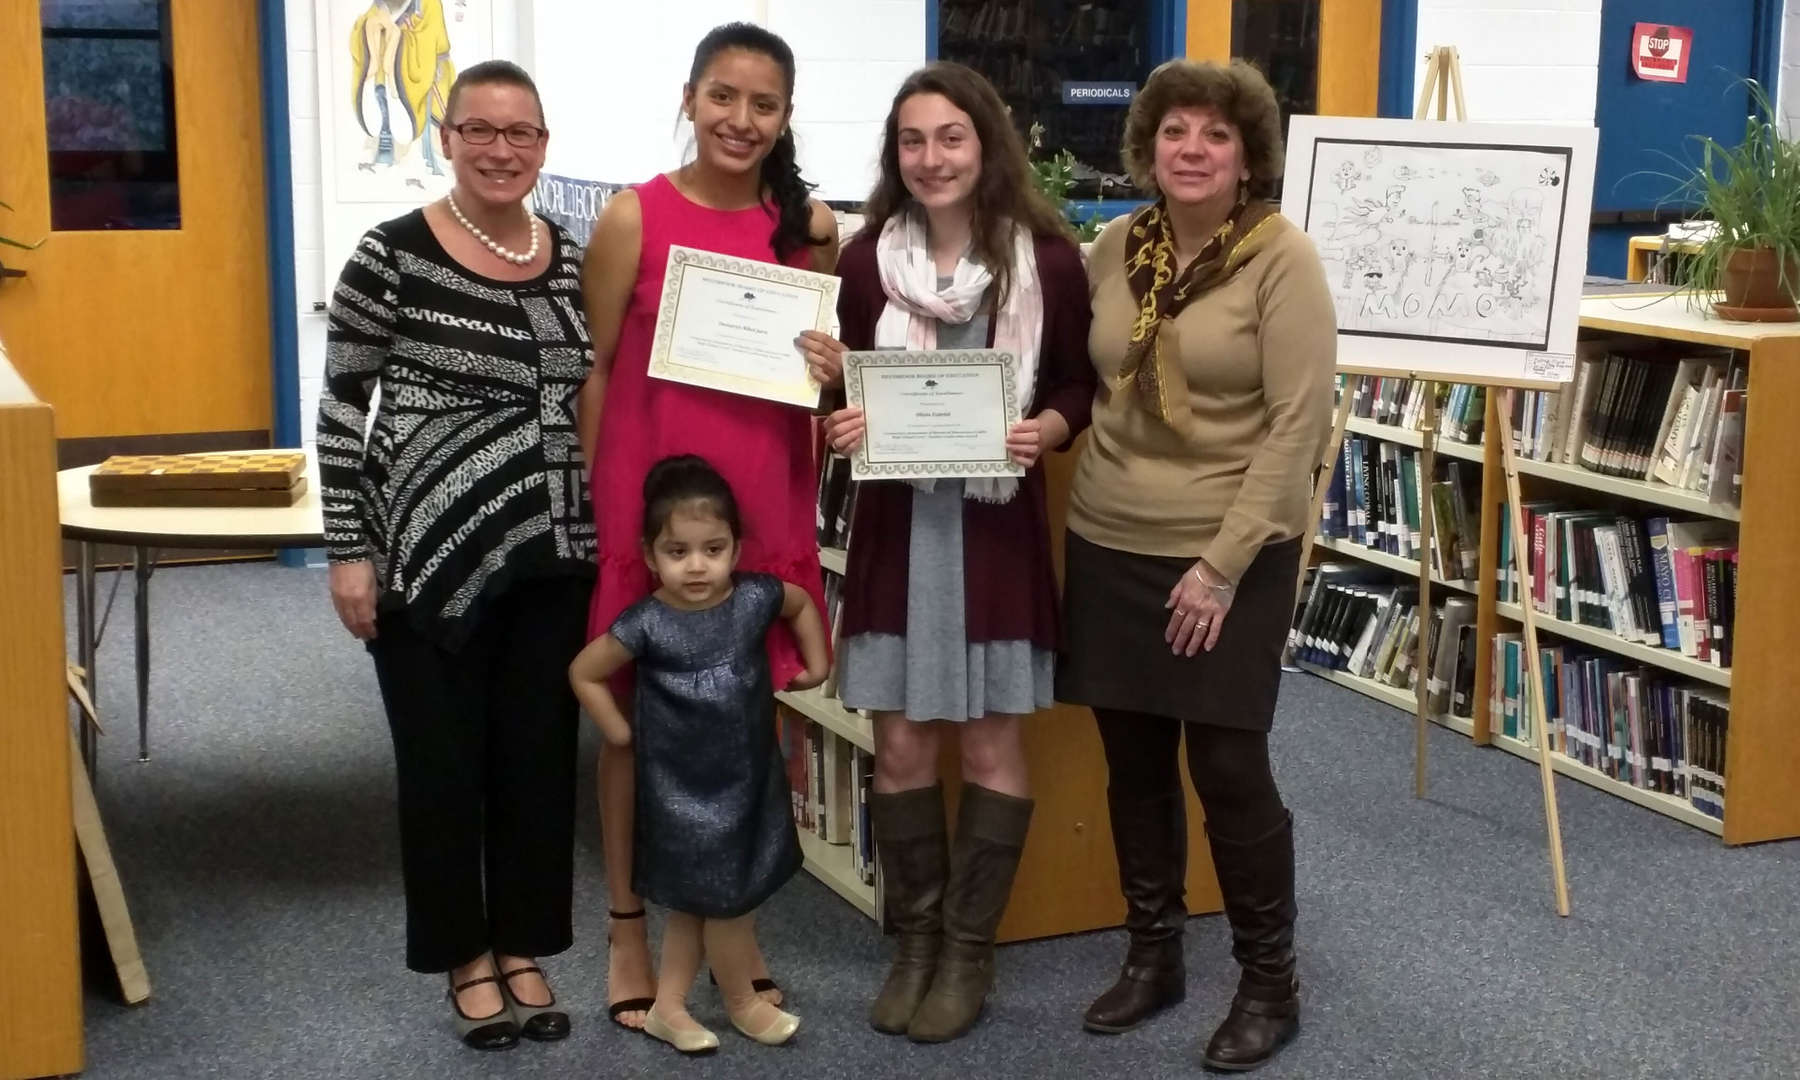 Olivia Fabrizi and Damarys Nicol Jara are the two students selected by the high school faculty to receive the CABE Student Leadership Awards this year.